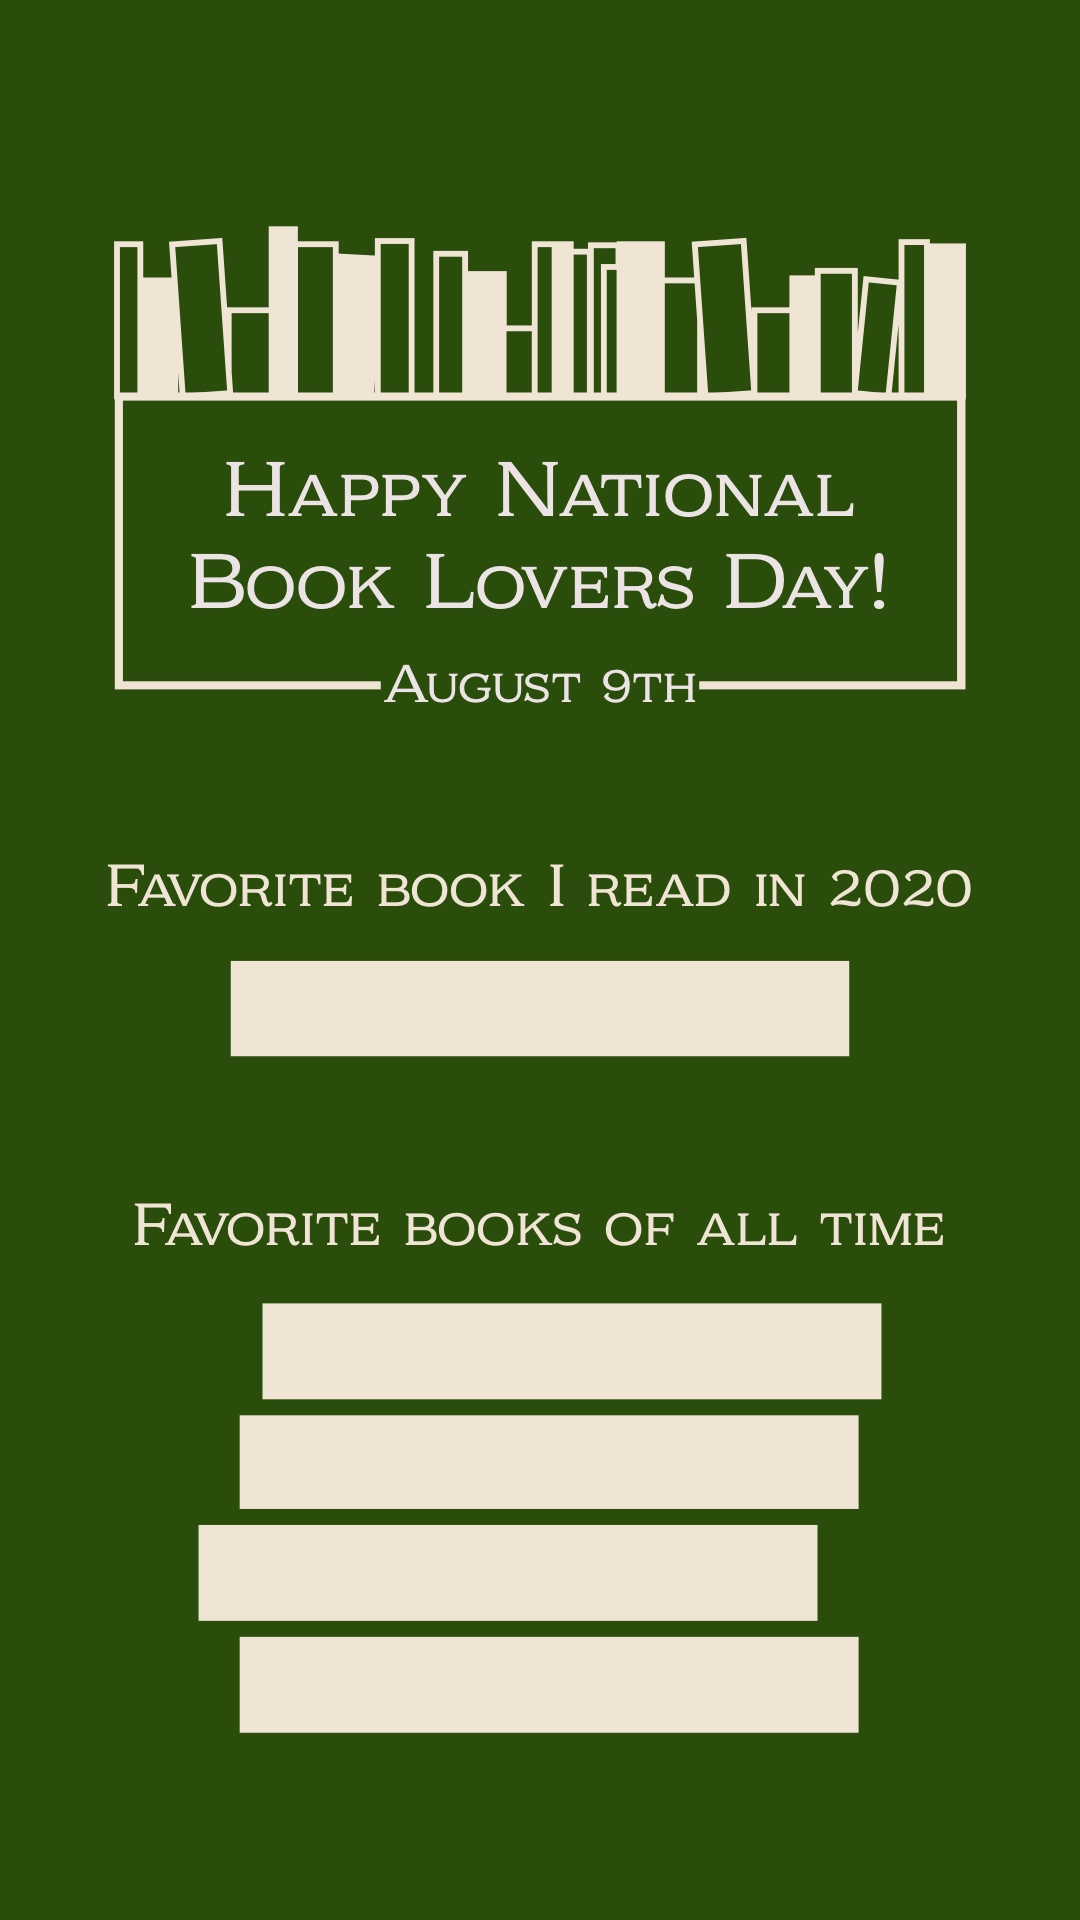 Green Book Lovers Day Favorite Book Blank Interactive Instagram Story Happy National Book Lovers Day! August 9th Favorite books of all time Favorite book I read in 2020